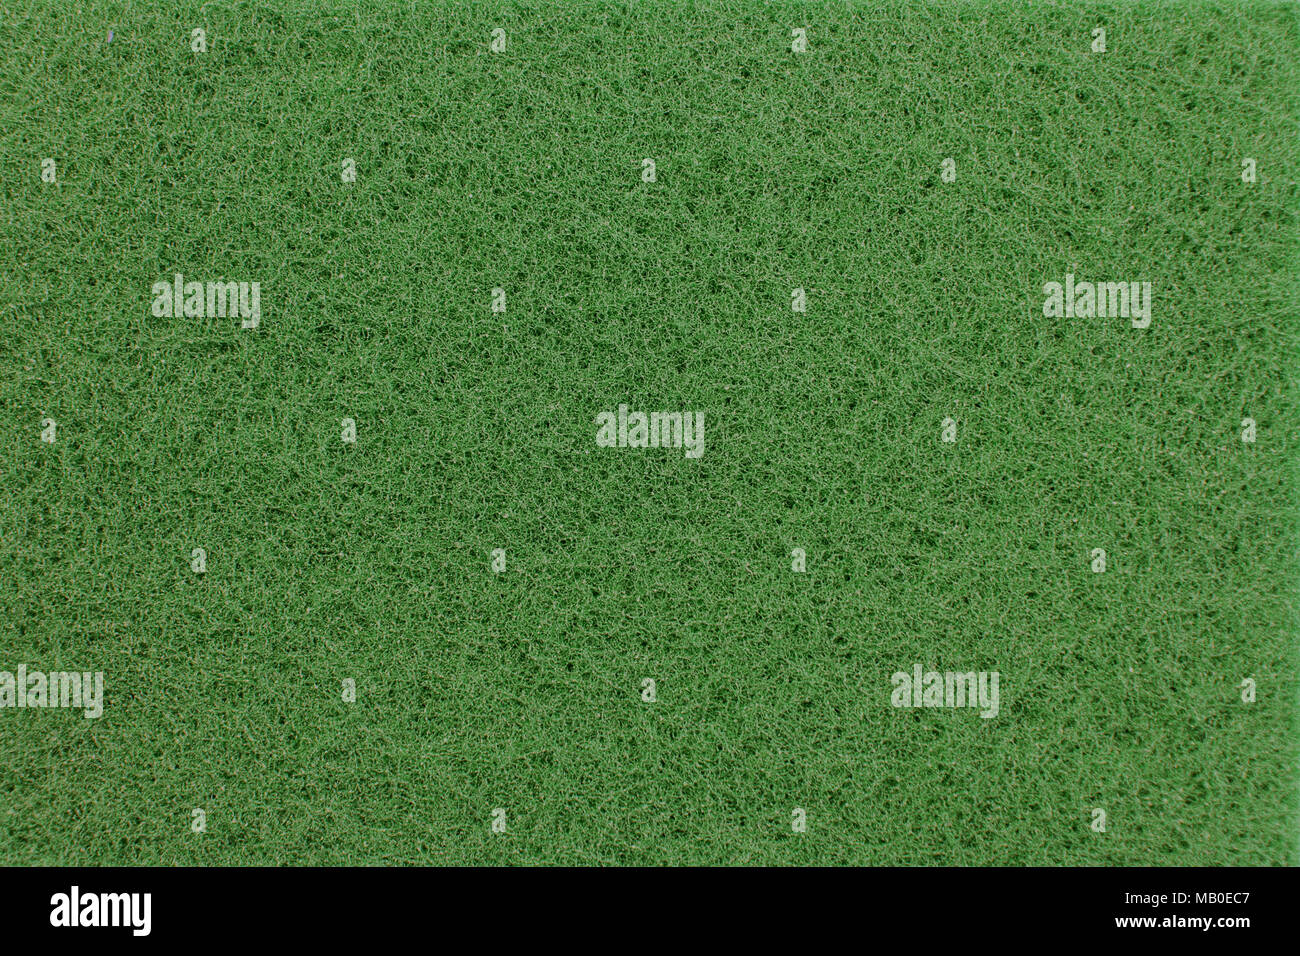 Background of textile material. Polishing material for metal surfaces - Stock Image